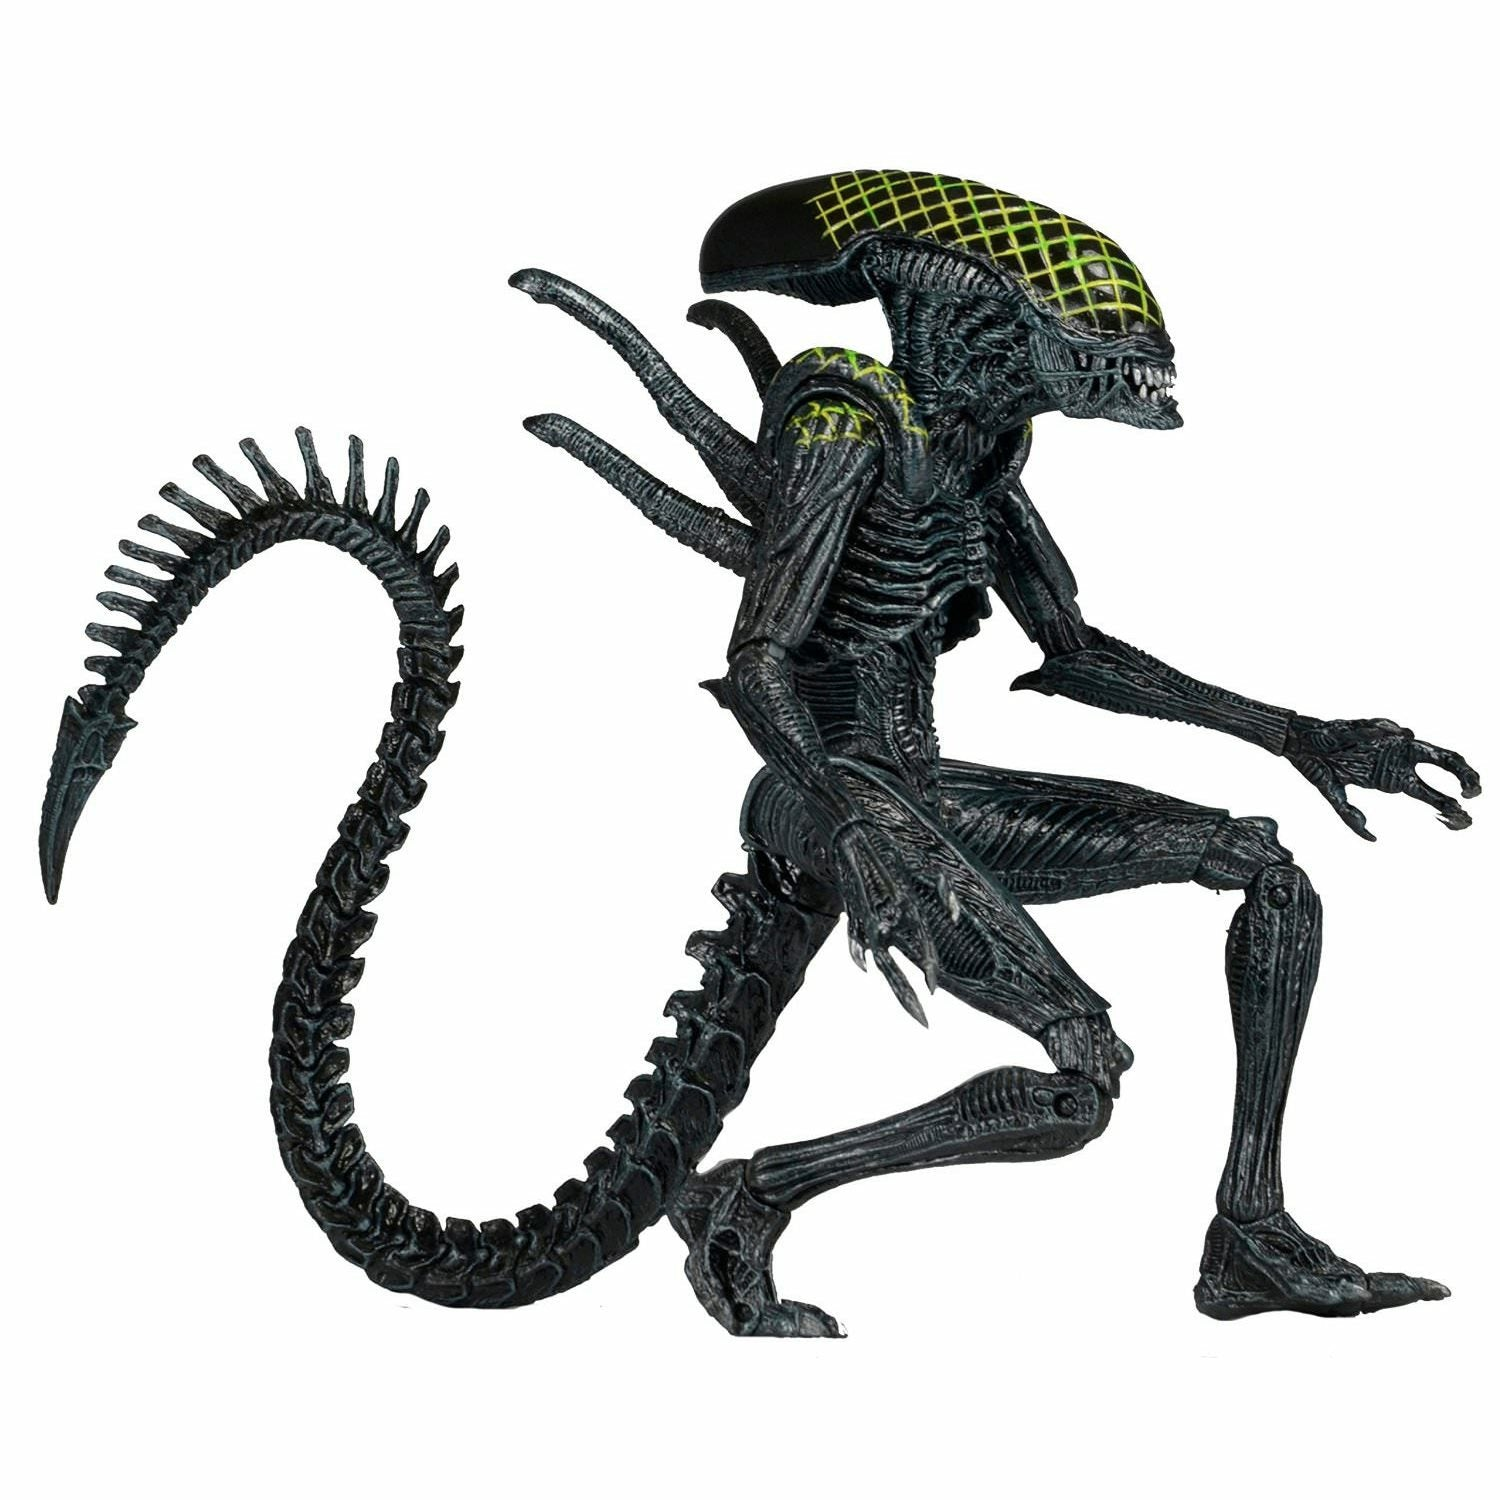 Alien vs. Predator Grid Alien Action Figure